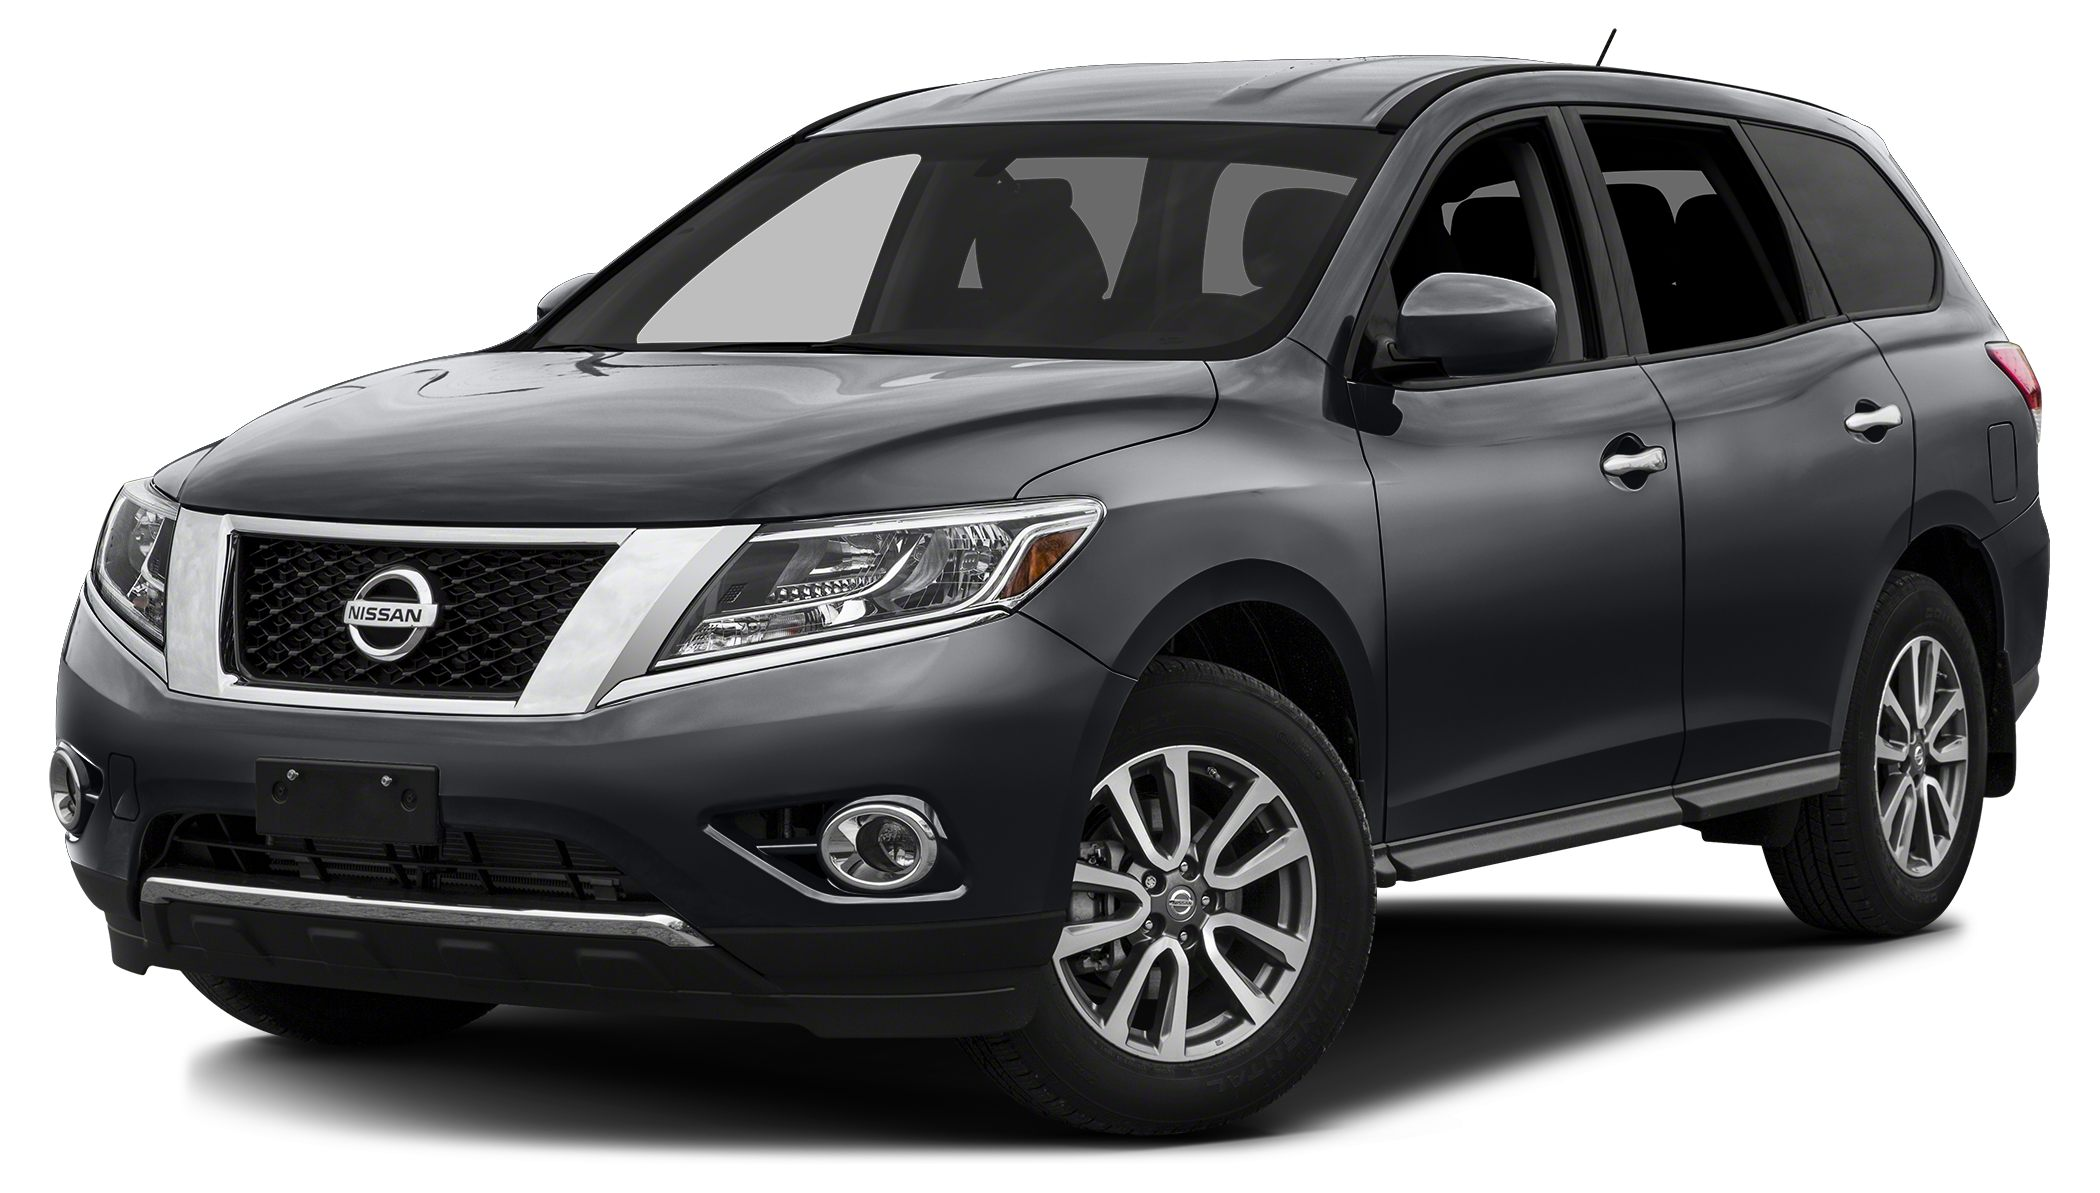 2013 Nissan Pathfinder S Proudly serving manatee county for over 60 years offering Cars Trucks S